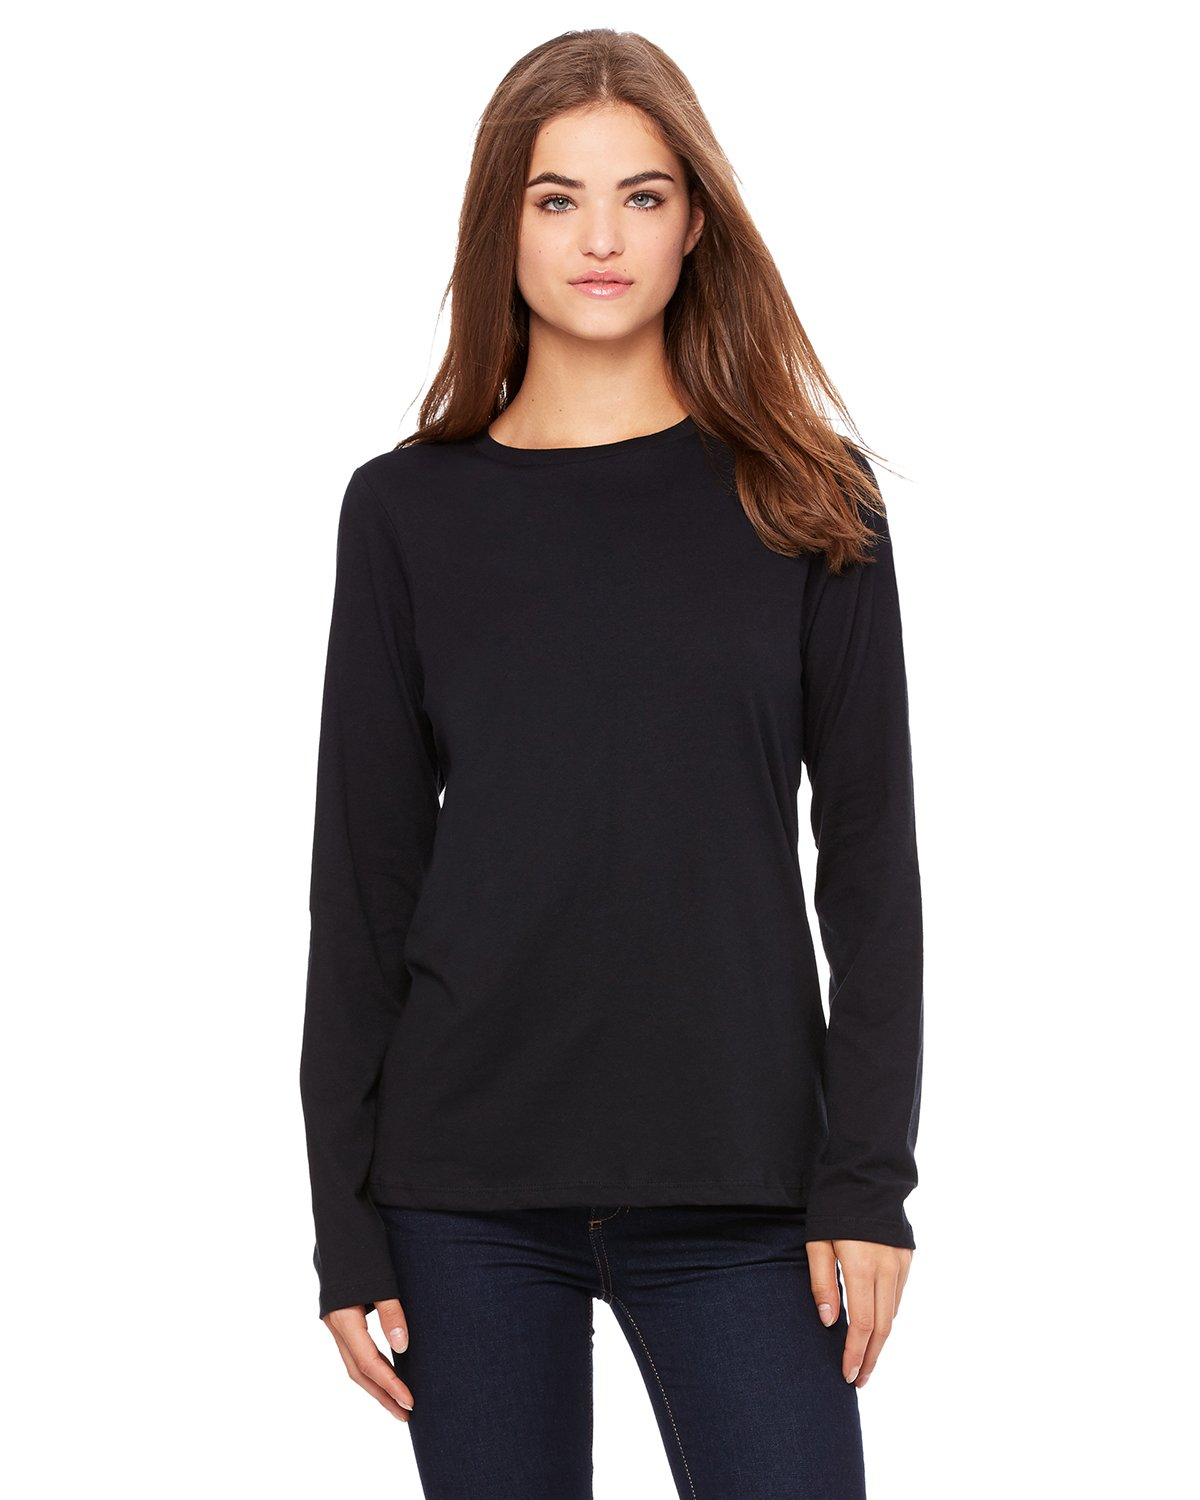 Bella + Canvas - B6450 - Ladies' Relaxed Jersey Long-Sleeve T-Shirt